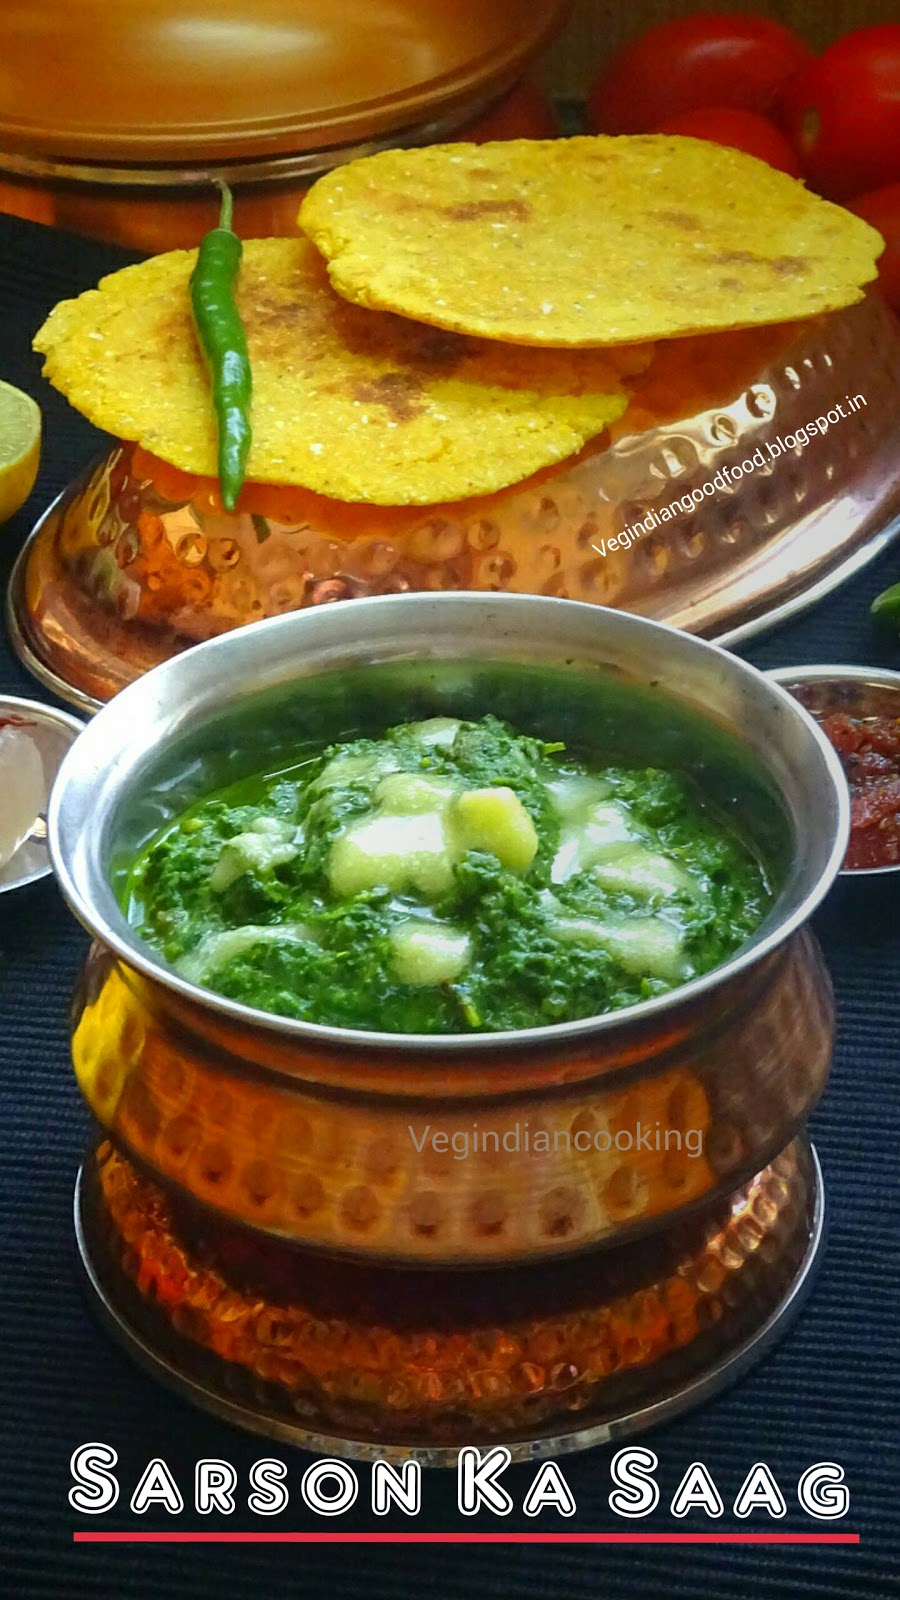 Veg indian cooking sarson ka saag sarson ka saag makki ki roti is a quintessential food cooked during the winter season in the north part of india sharing sarson ka saag recipe with step forumfinder Image collections